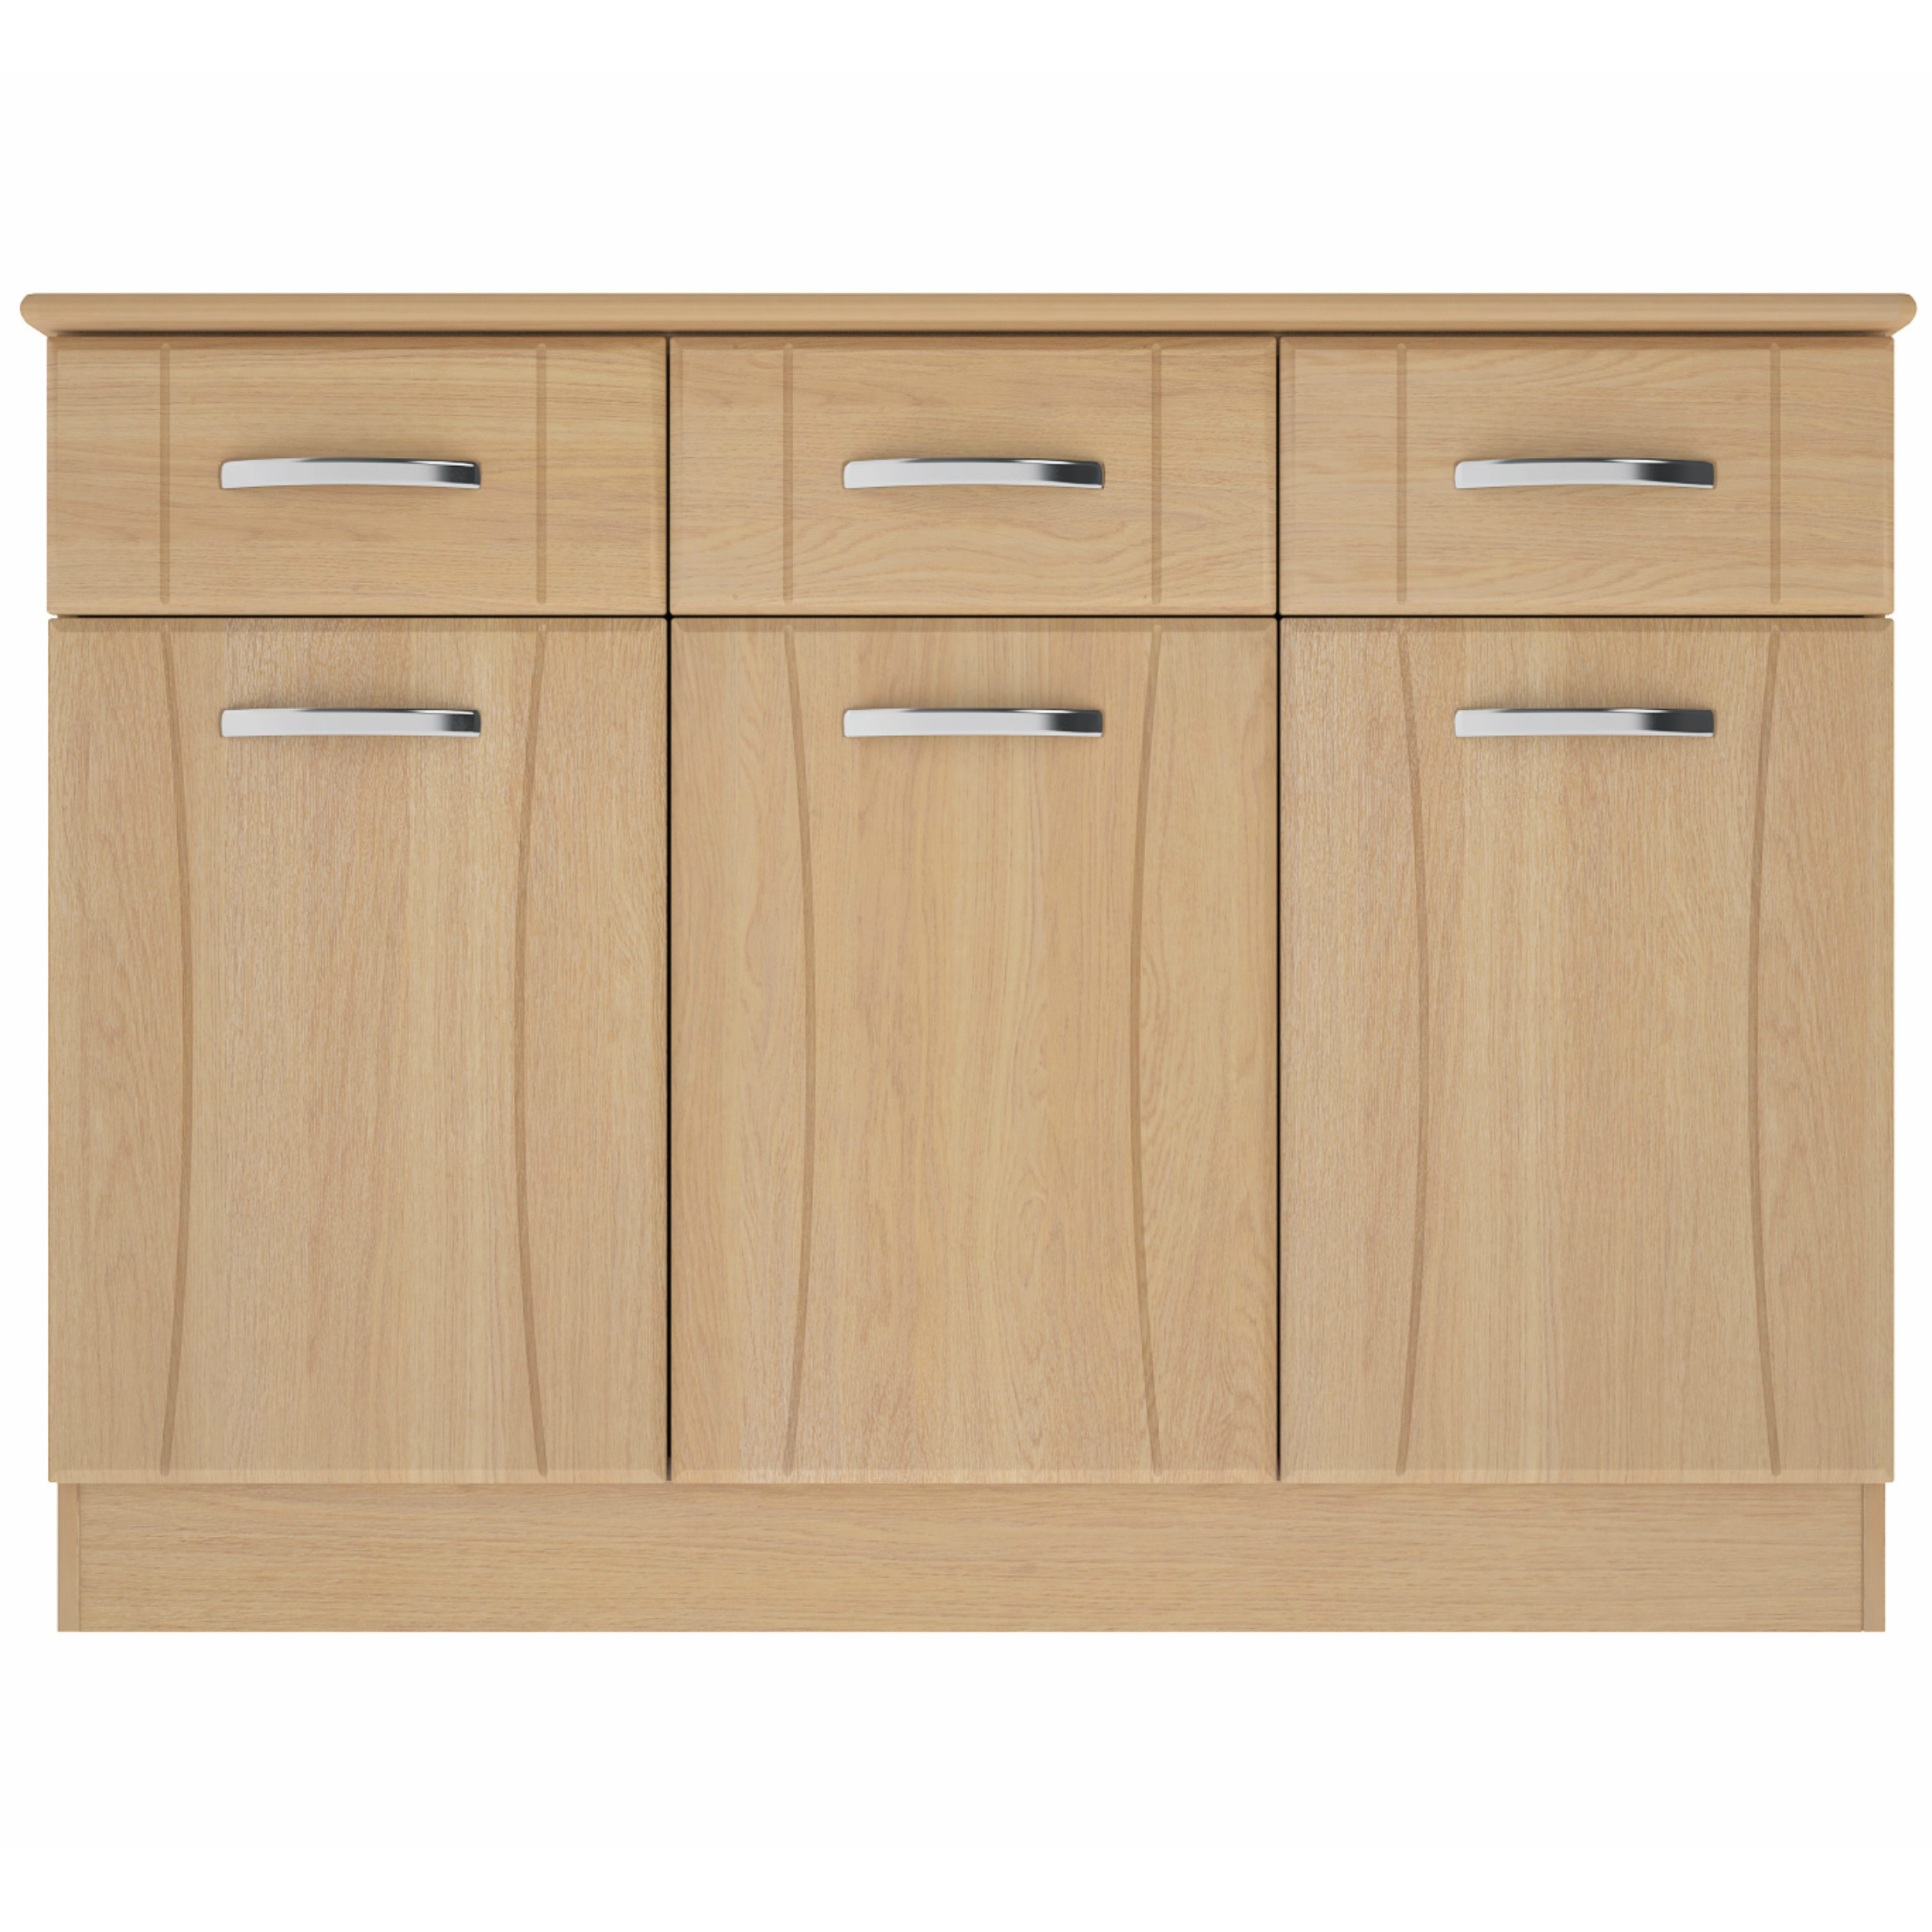 Sideboards – Furncare Inside Widely Used Walnut Finish 2 Door/3 Drawer Sideboards (Gallery 12 of 20)